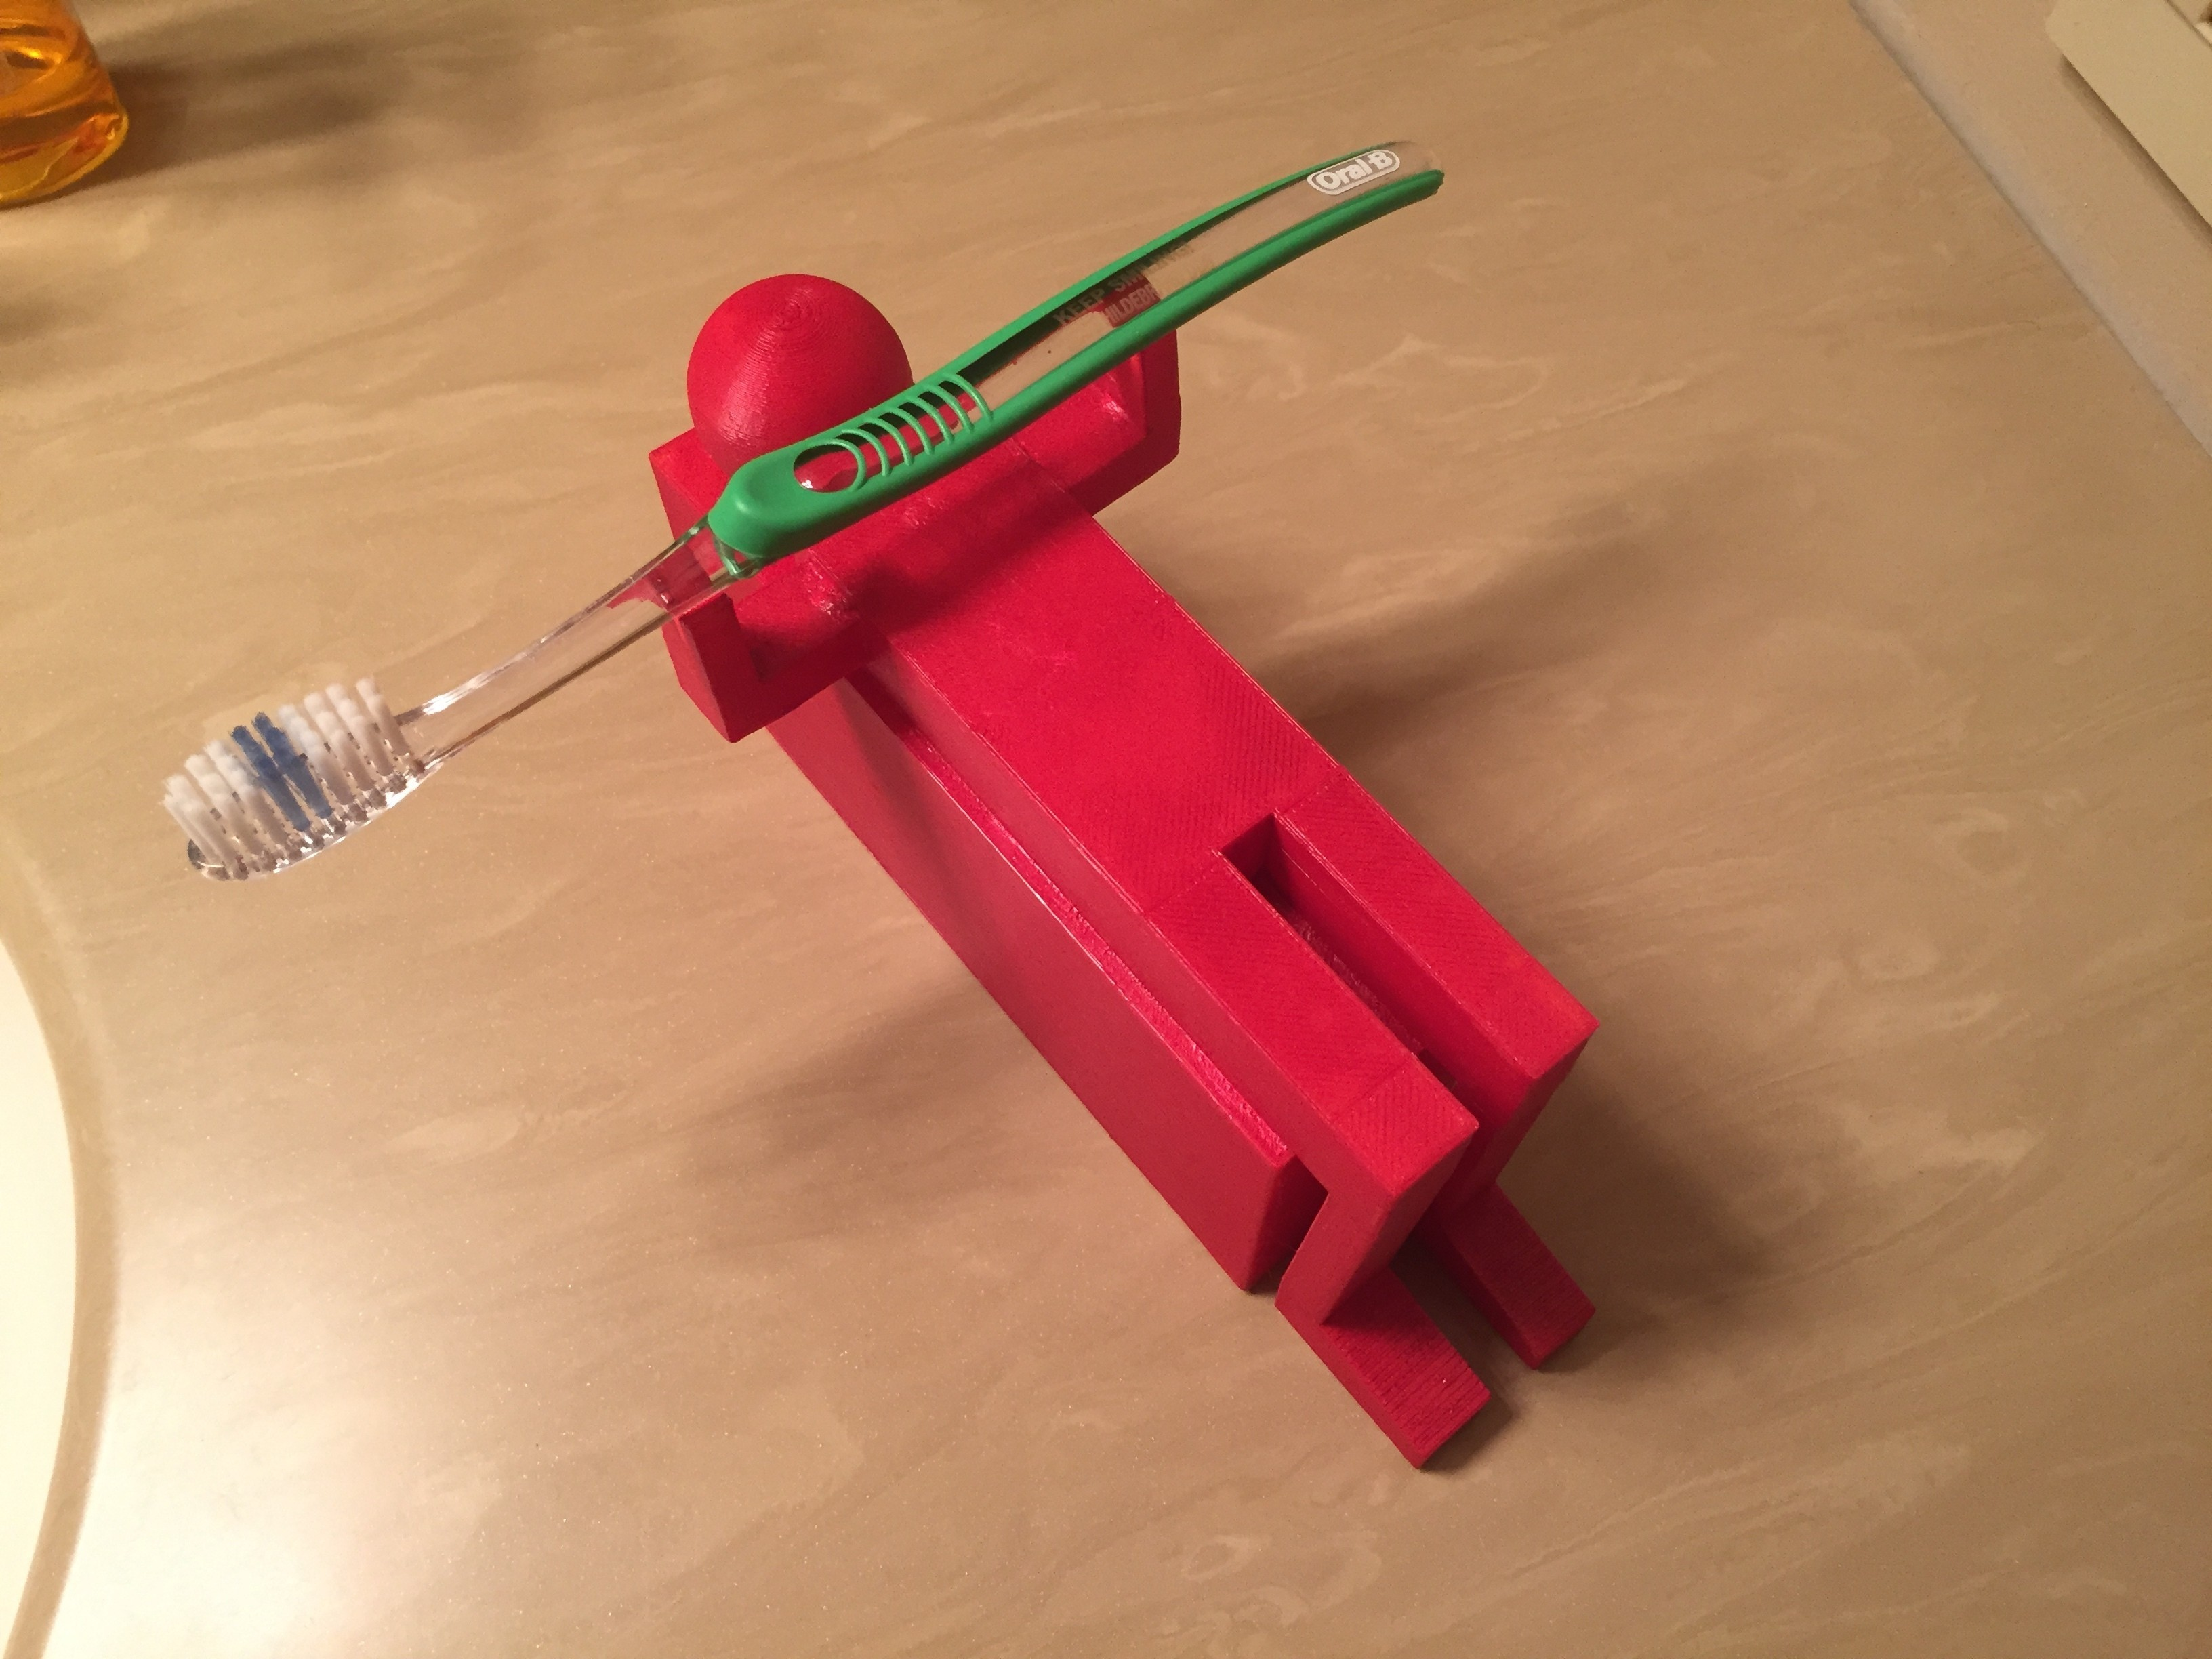 IMG_1842[1].JPG Download free STL file Bench Press Toothbrush Holder • 3D printer model, Z85